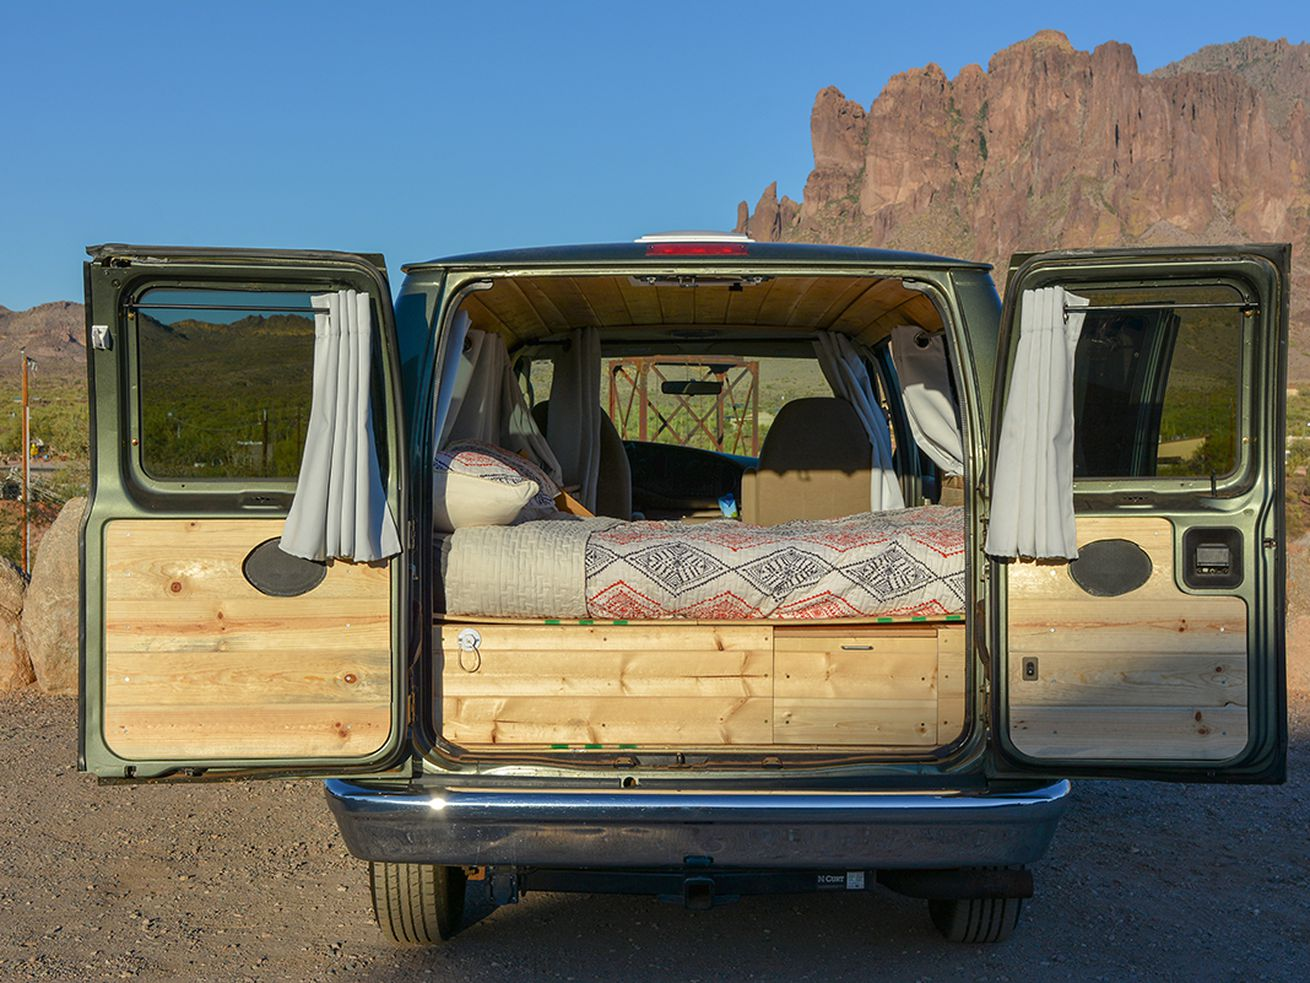 Boho Camper Vans is renting and selling converted campers in Phoenix, Arizona.